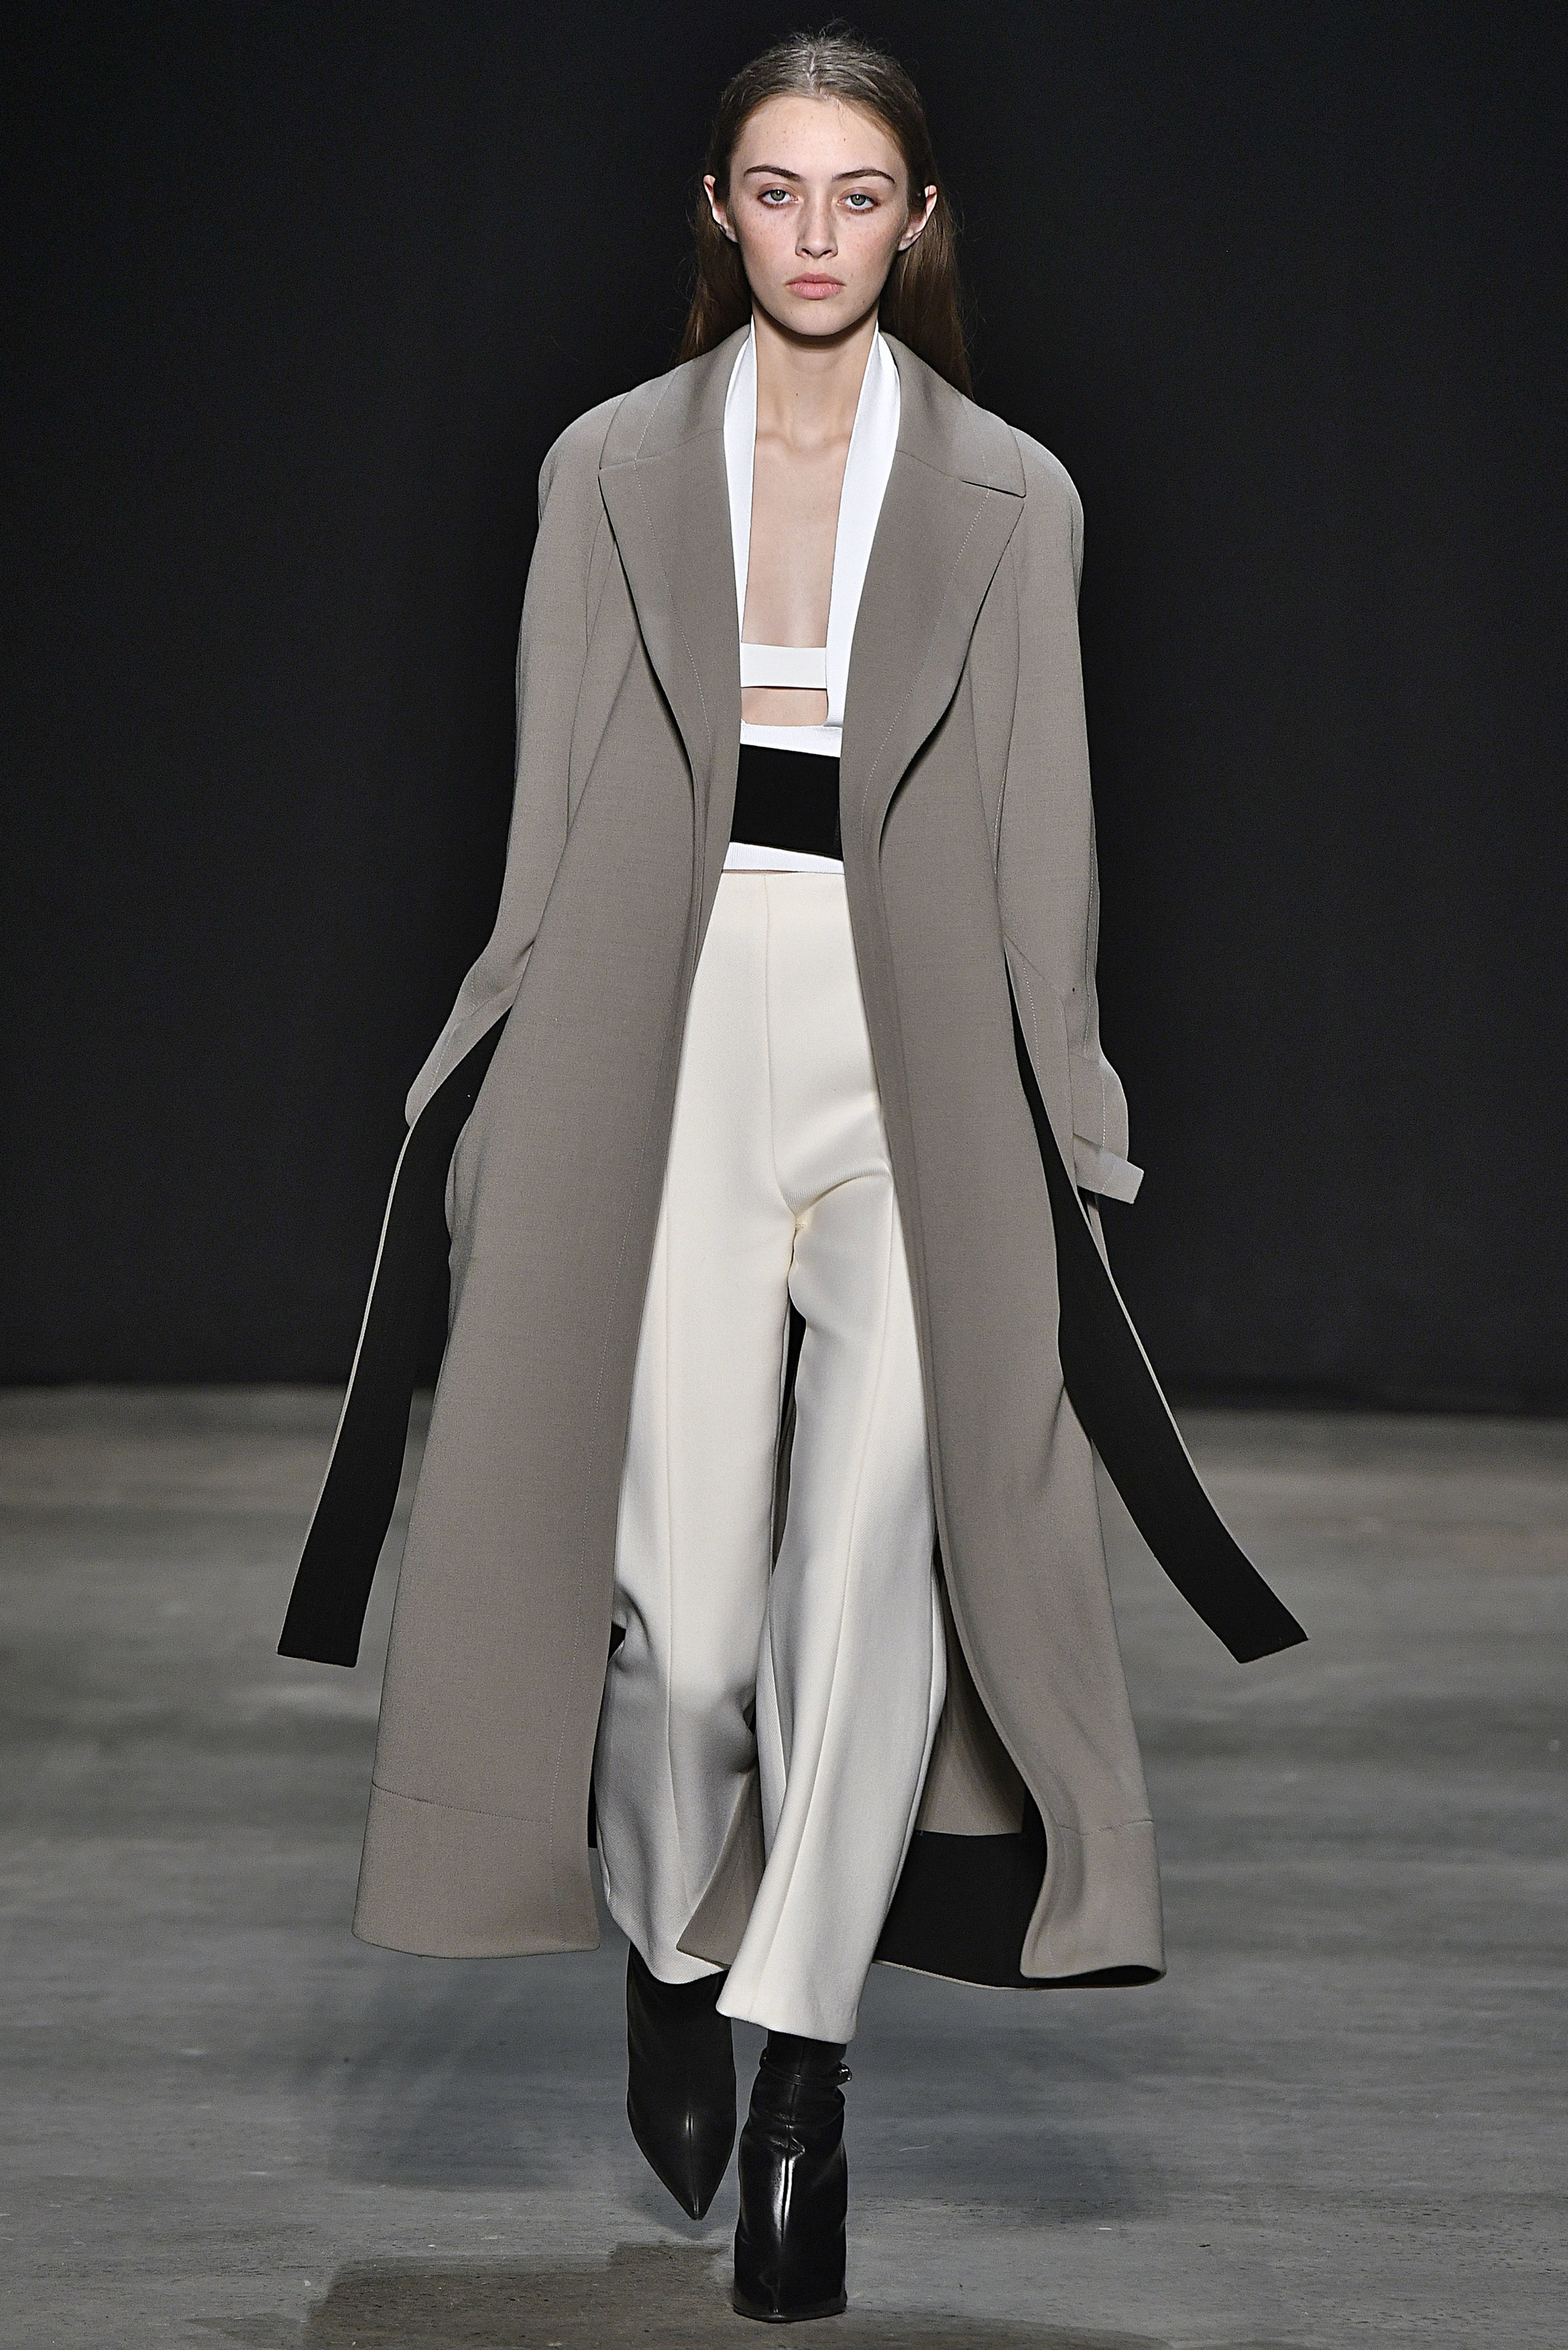 Narciso Rodriguez Fall 2017 collection. Khaki wool barathea trench coat over white double knit halter with ivory wool twill pant.